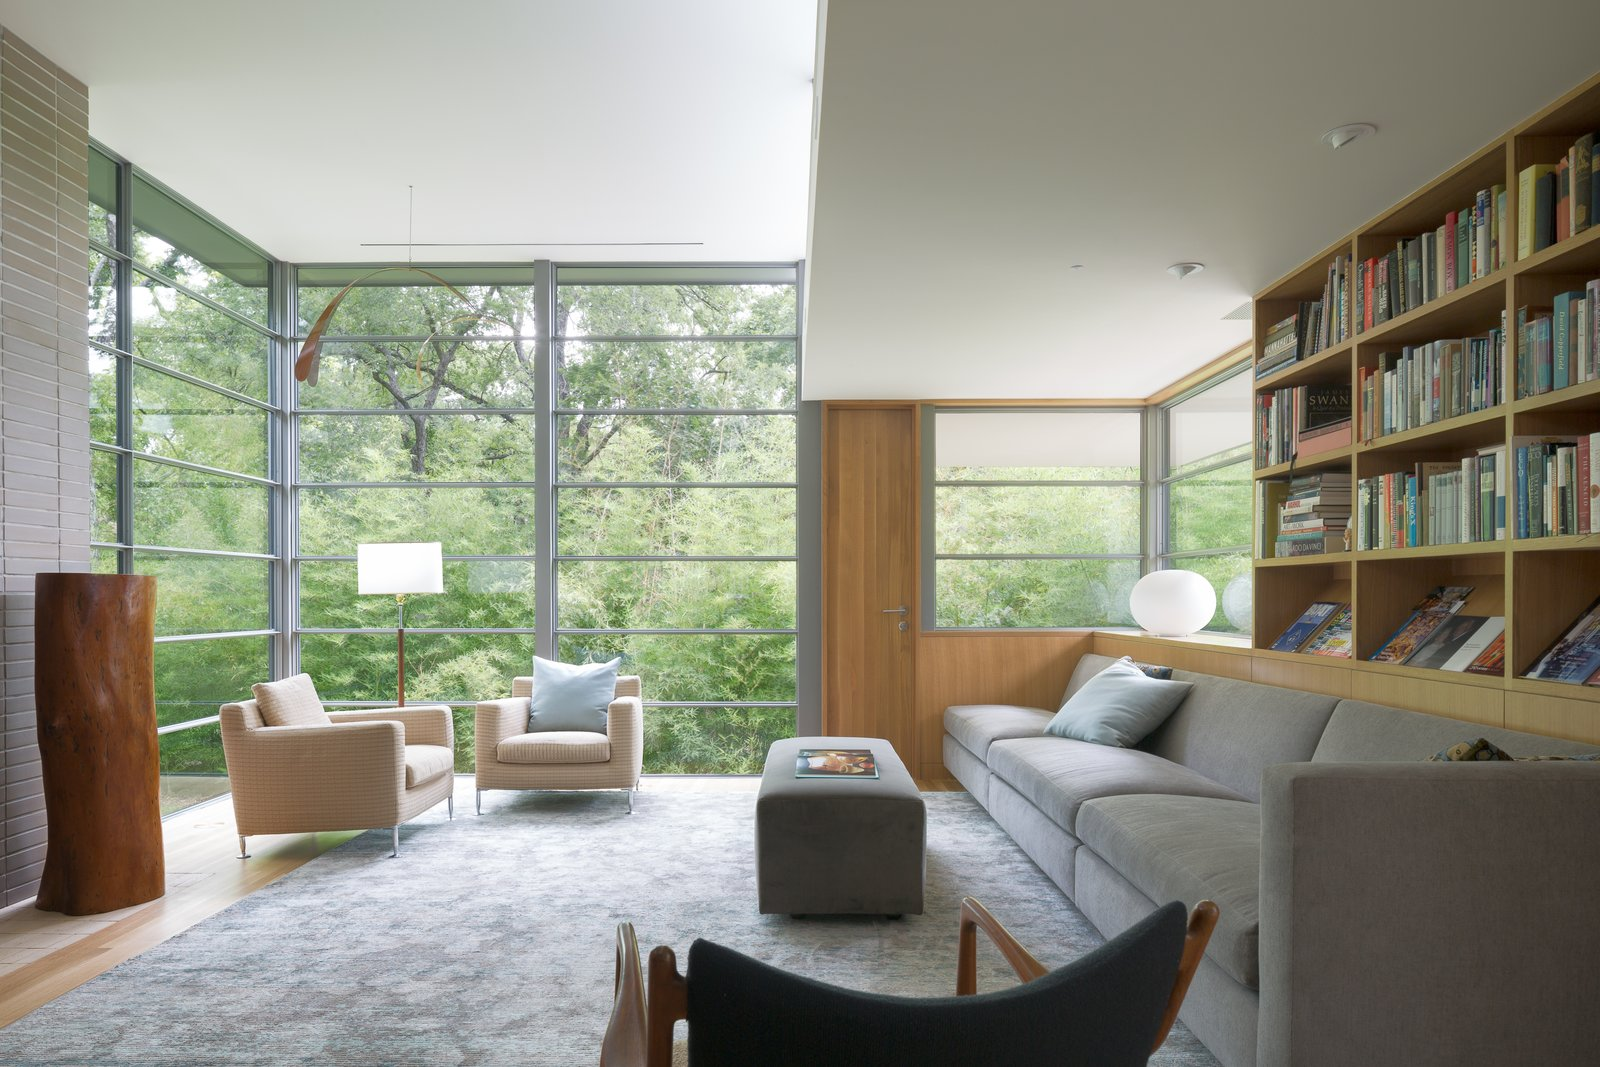 Living Room, Chair, Recessed Lighting, Light Hardwood Floor, Ottomans, and Sectional  Inwood Place by Tim Cuppett Architects